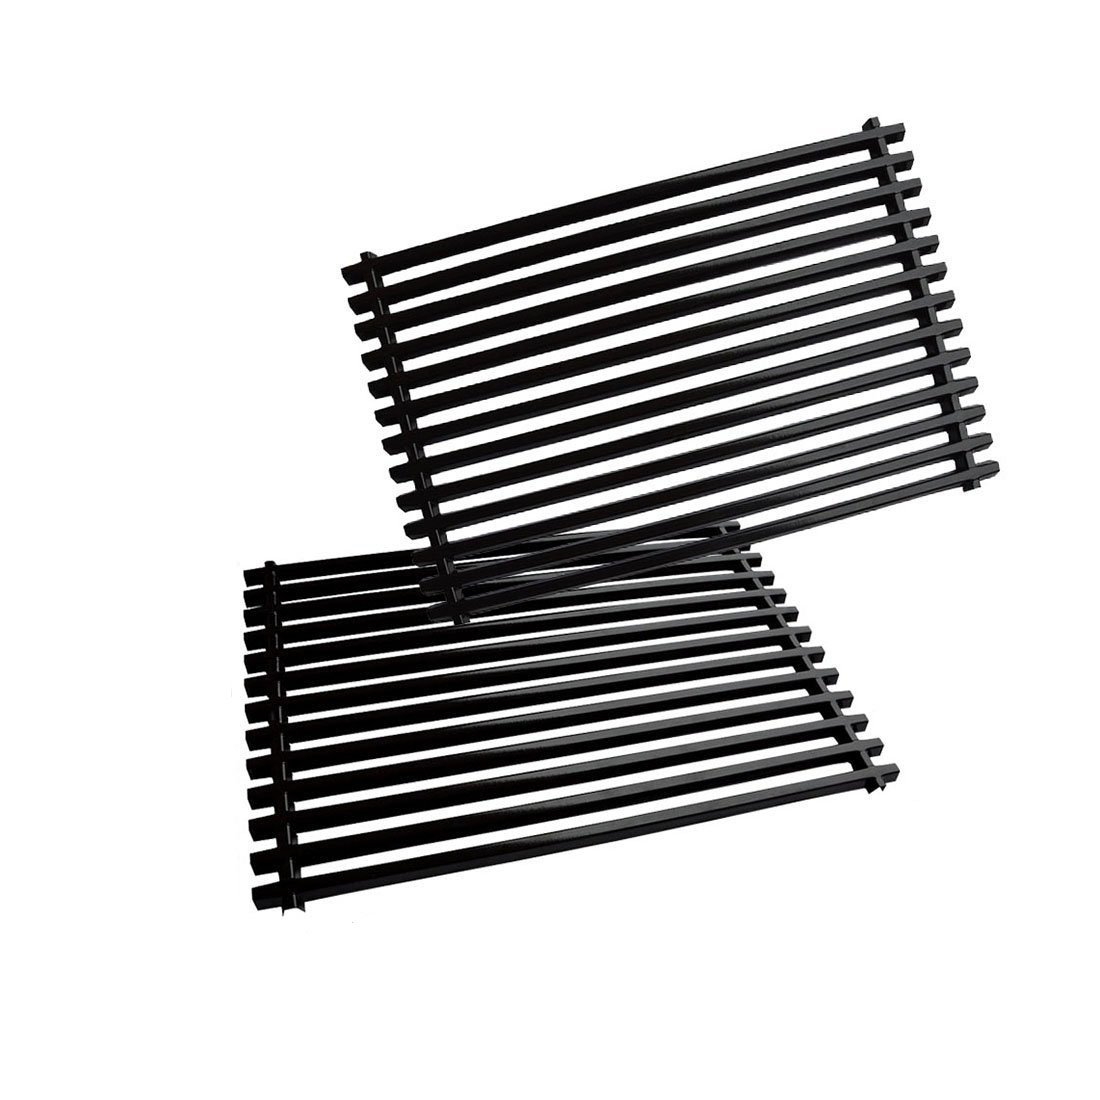 Onlyfire Porcelain Enameled Steel Replacement Cooking Grill Grid Grates Fit Weber Spirit Genesis Grills, Lowes Model Grills by only fire